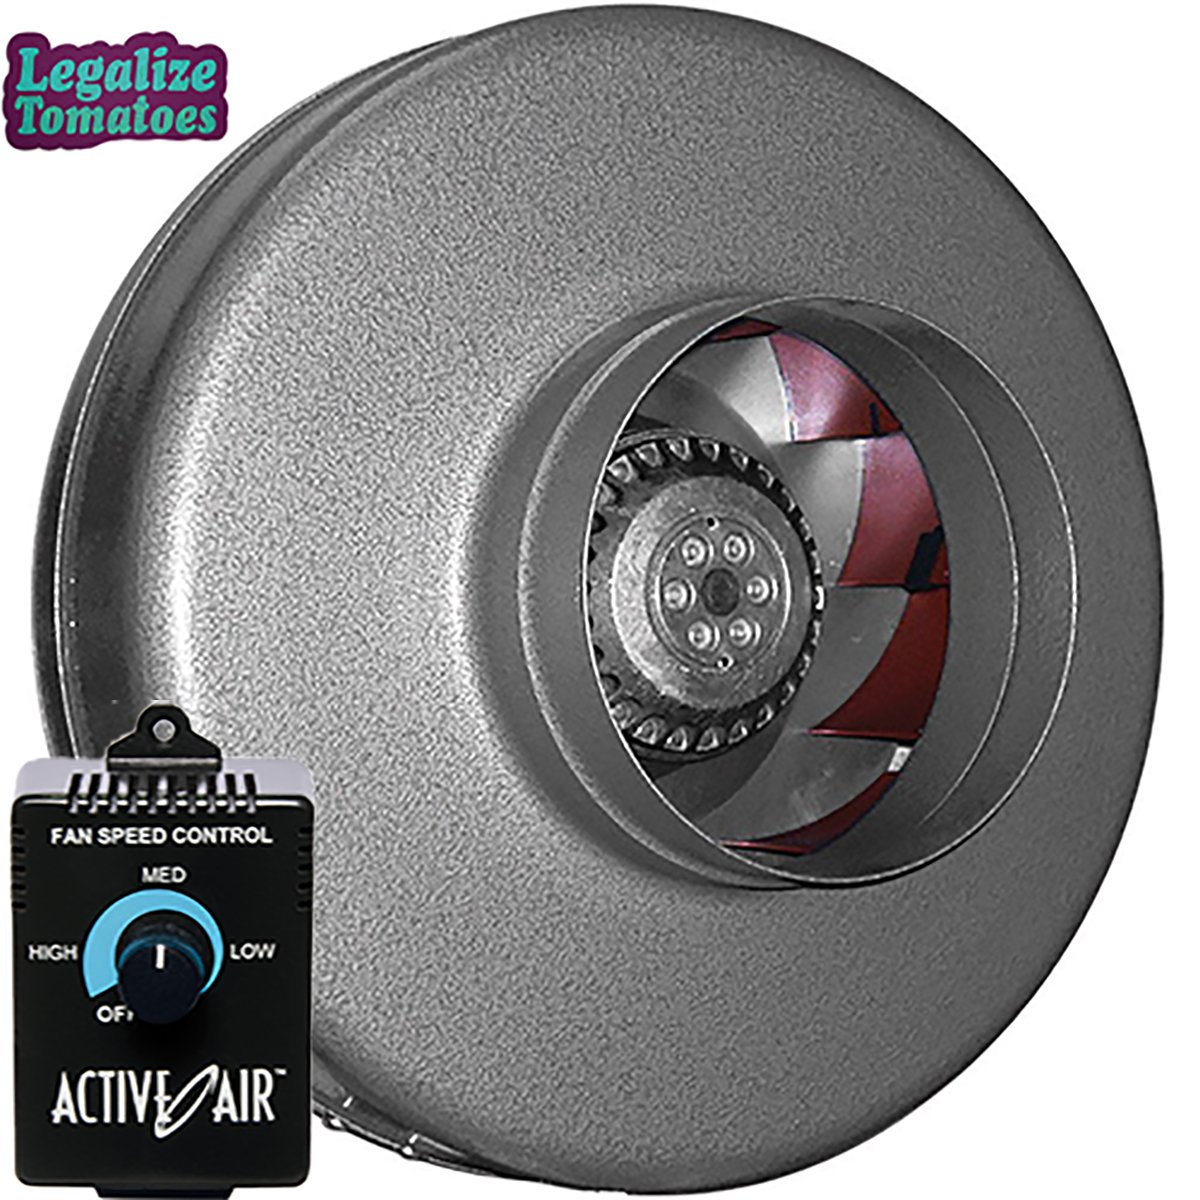 Vortex 6'' Inch 497 CFM Inline Power Fan | FREE Active Air Controller and FREE Sticker | VTX Series Round Centrifugal Fan | Aerodynamic Design for Optimized Cooling and Airflow | Maintenance-Free